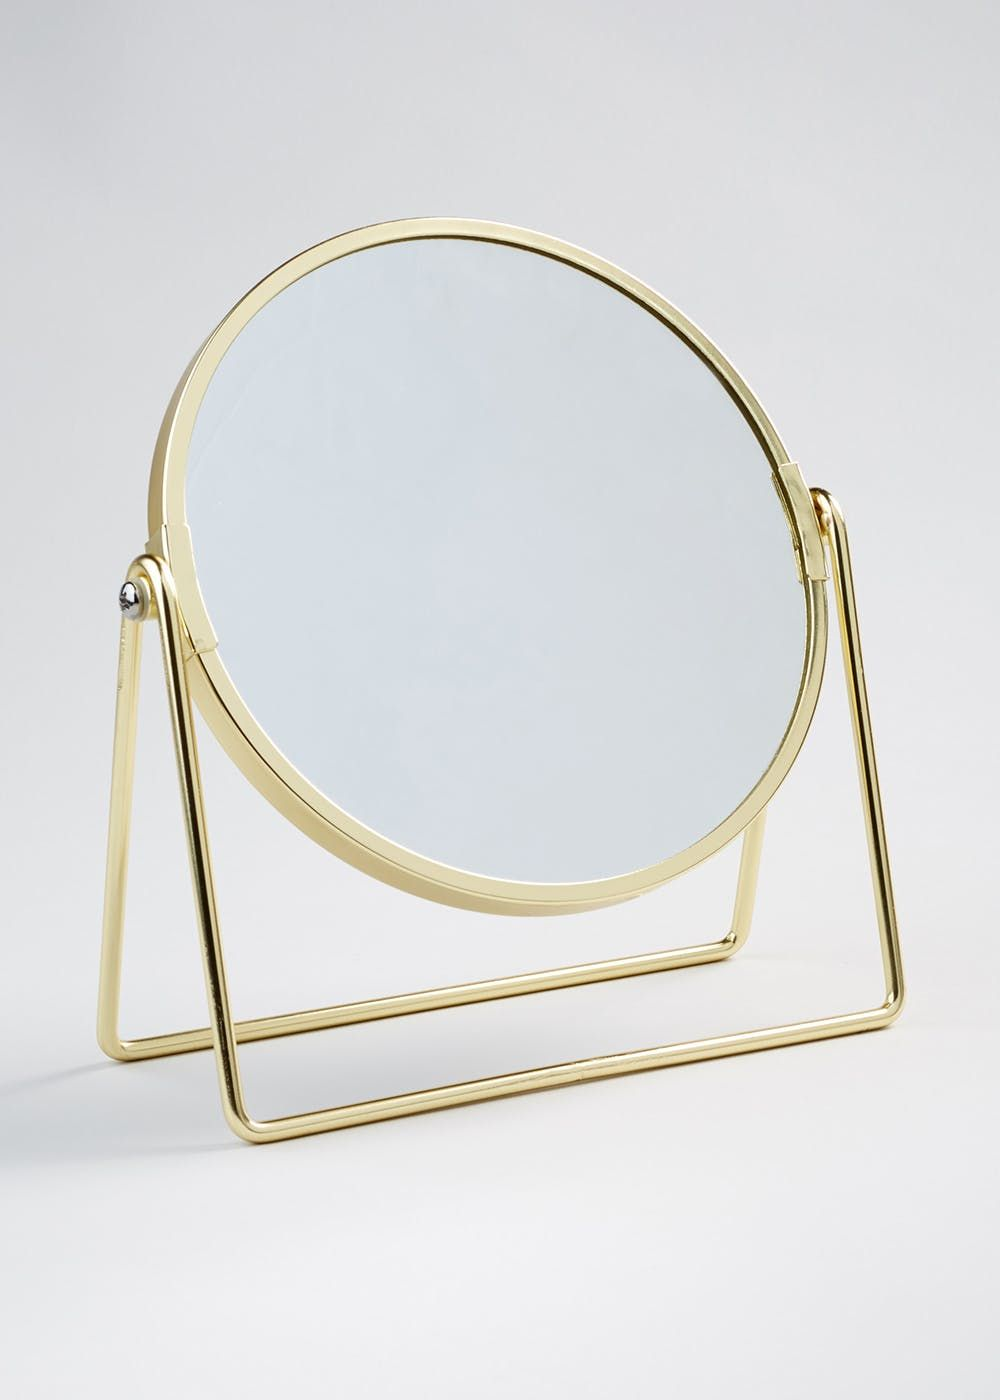 Wire Stand Double Sided Mirror 21cm X 19cm Gold